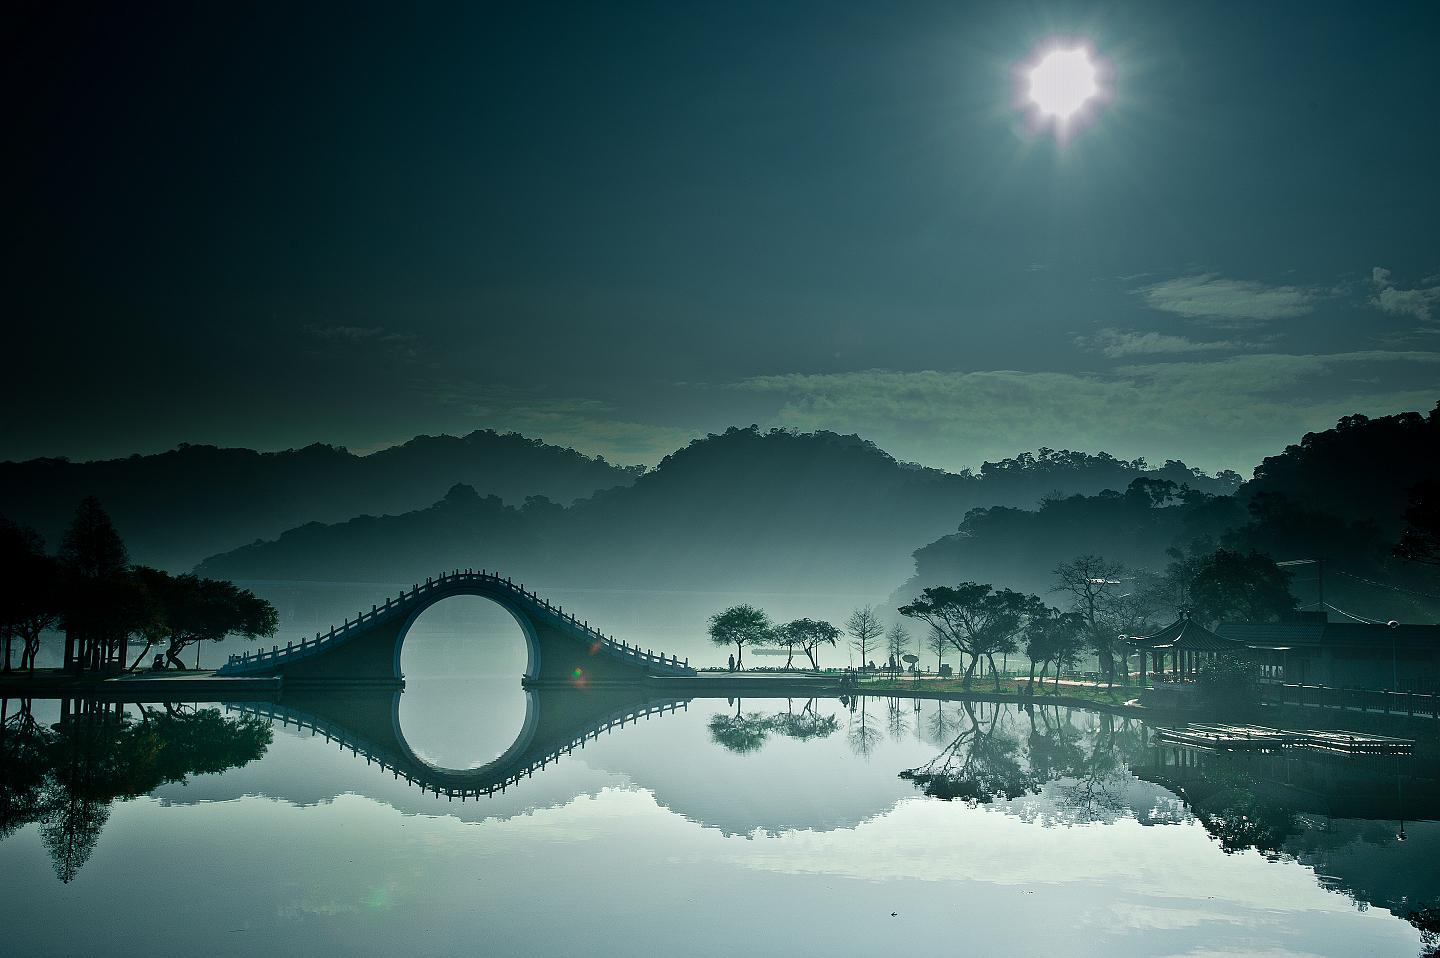 10. The Moon Bridge, Taipei, Taiwan 2